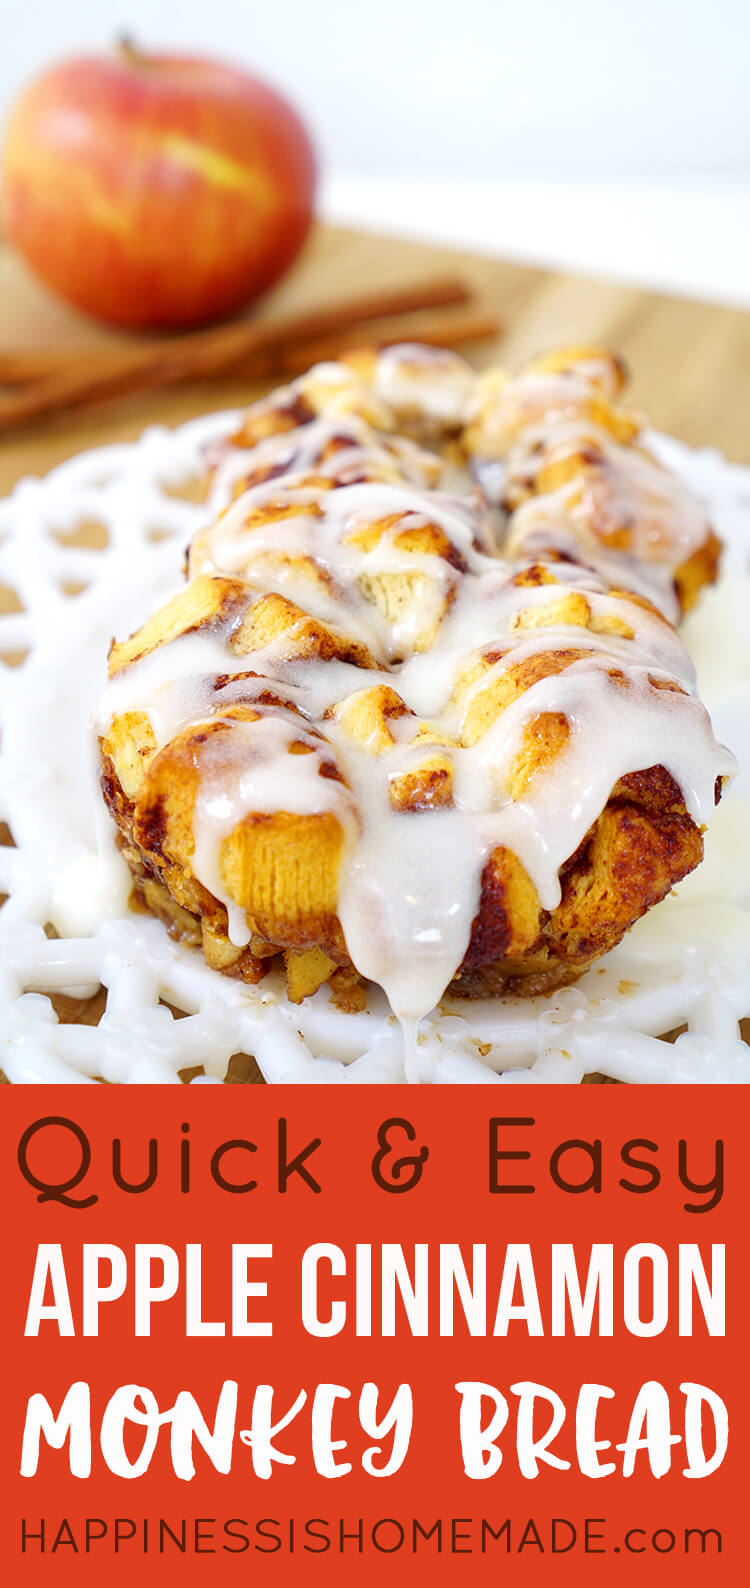 quick-and-easy-apple-cinnamon-monkey-bread